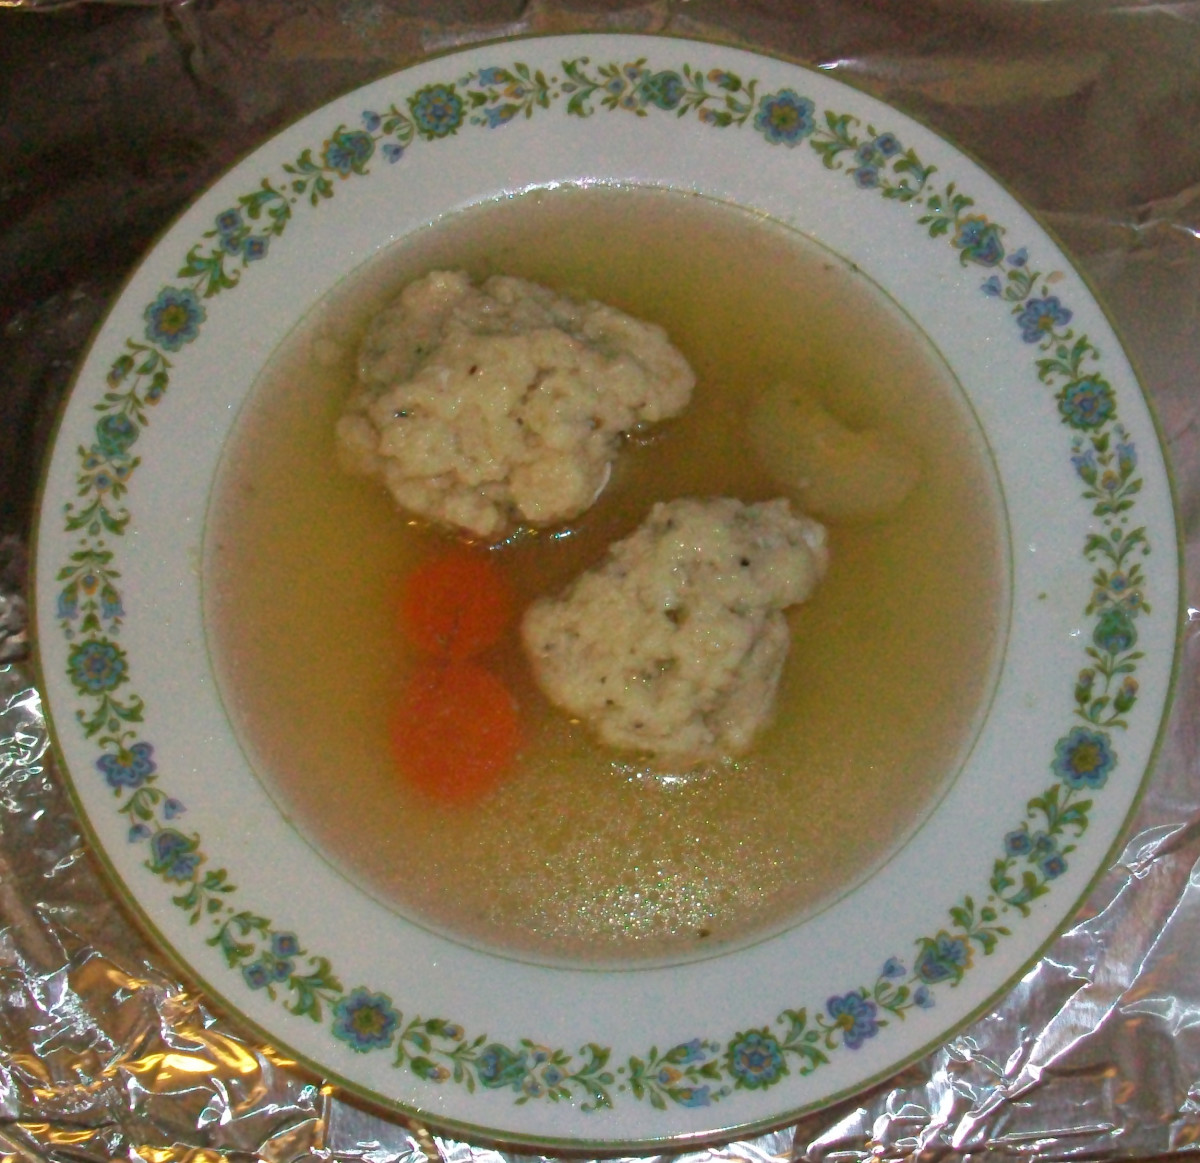 Serve with matzo balls for an authentic Jewish culinary experience.